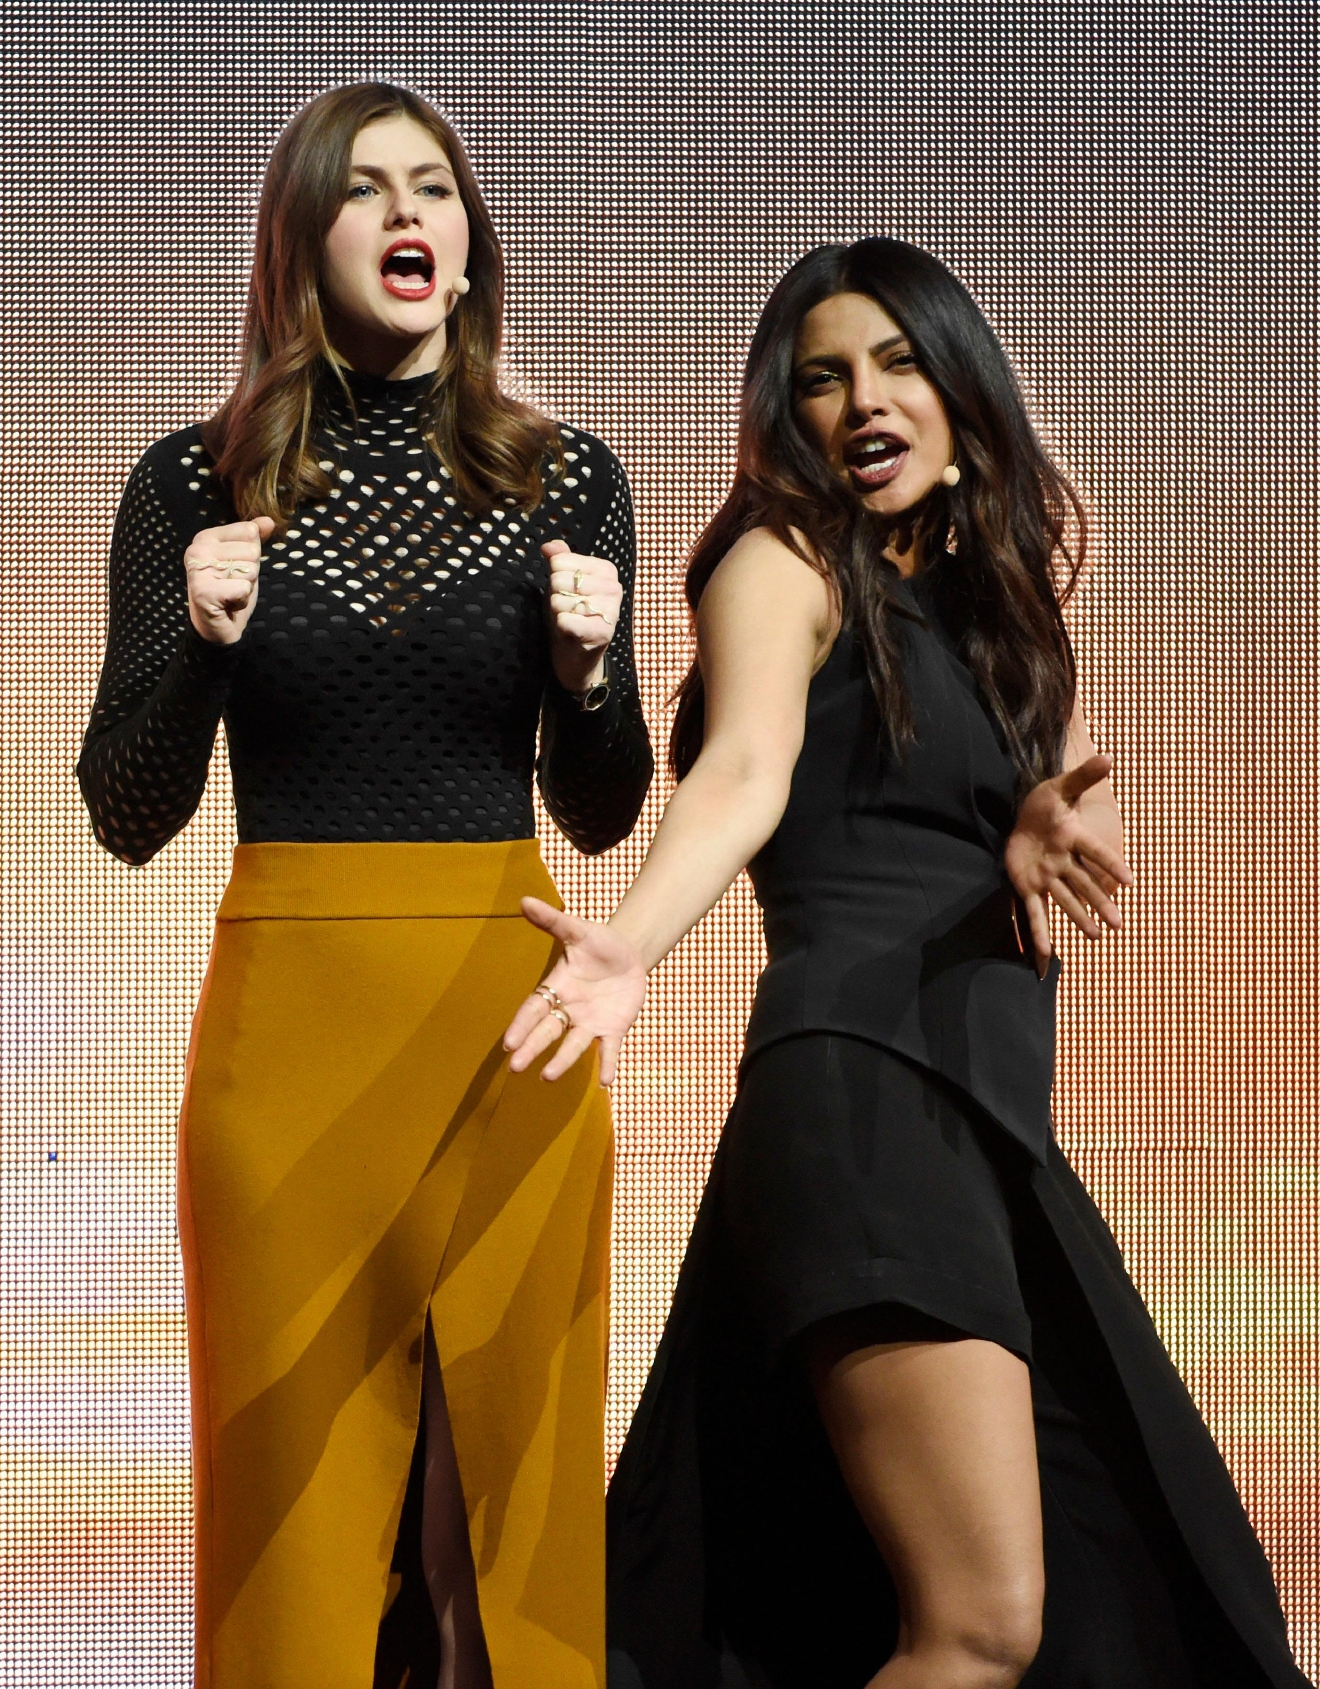 "Alexandra Daddario, left, and Priyanka Chopra, cast members in the upcoming film ""Baywatch,"" react to the audience during the Paramount Pictures presentation at CinemaCon 2017 at Caesars Palace on Tuesday, March 28, 2017, in Las Vegas. (Photo by Chris Pizzello/Invision/AP)"